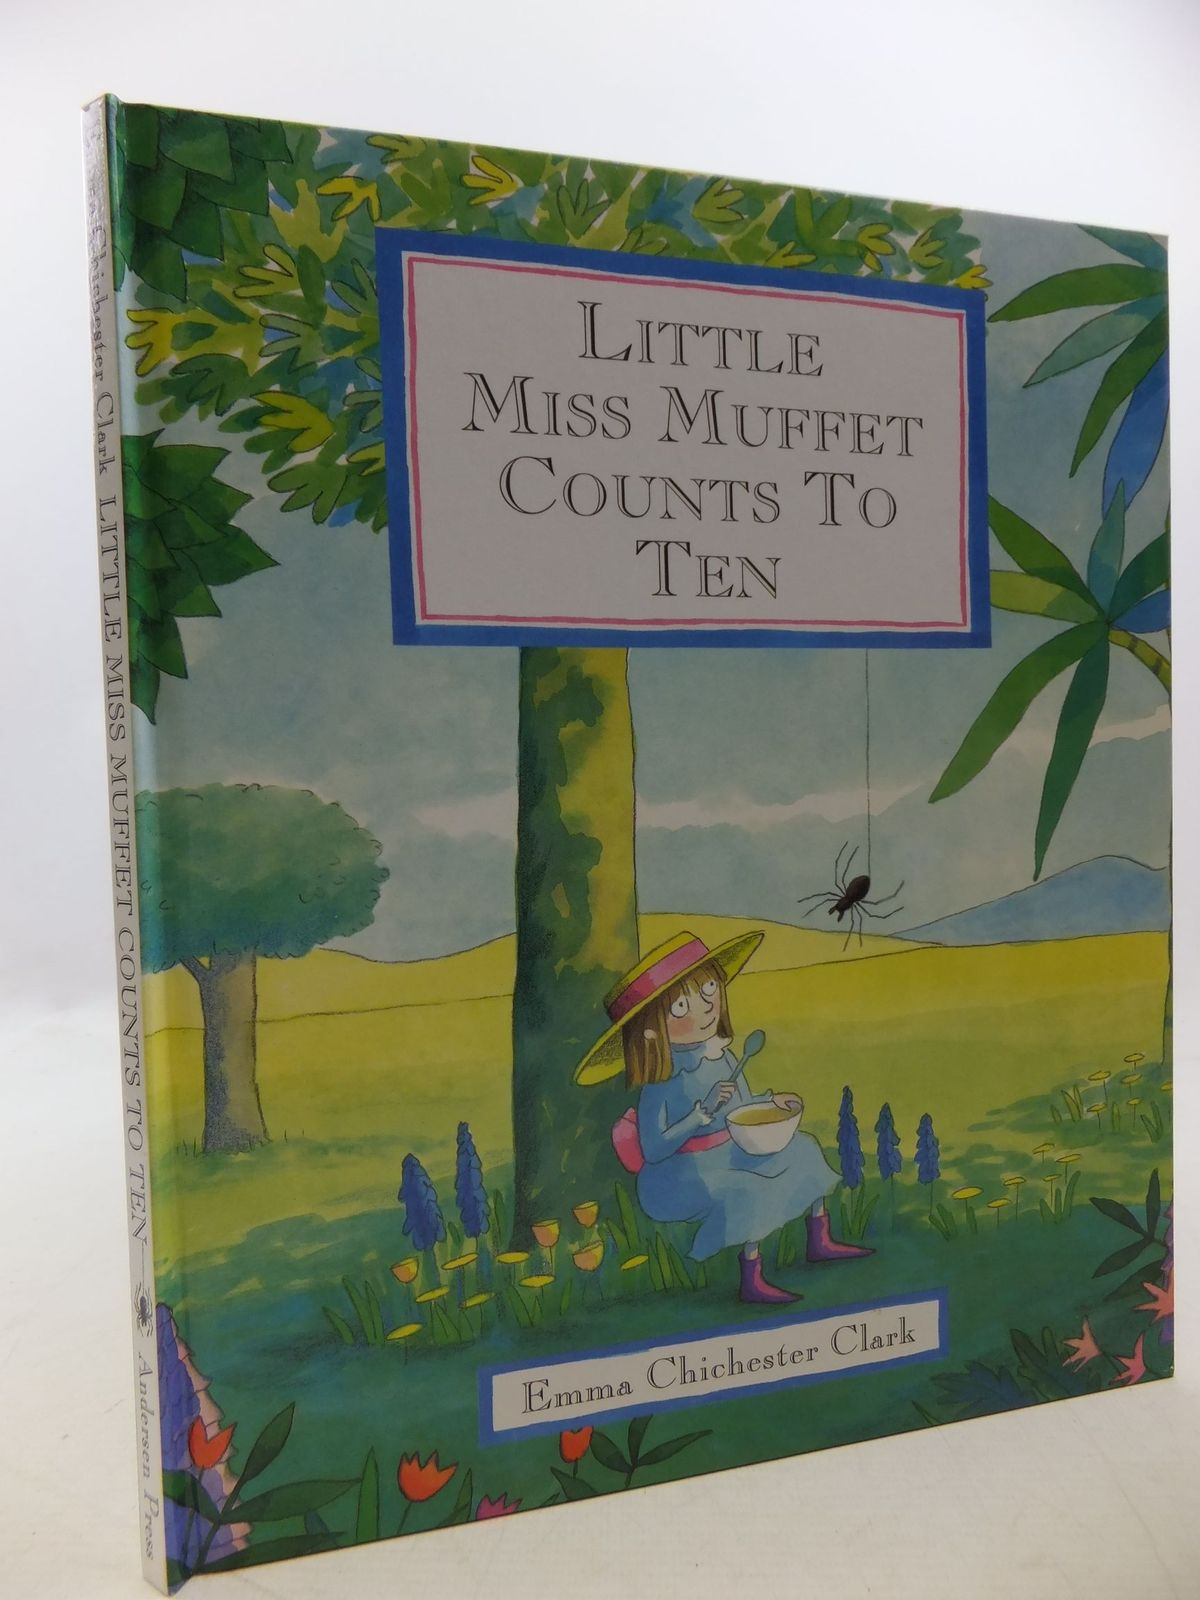 Photo of LITTLE MISS MUFFET COUNTS TO TEN written by Chichester-Clarke, Emma illustrated by Clark, Emma Chichester published by Andersen Press (STOCK CODE: 1710270)  for sale by Stella & Rose's Books